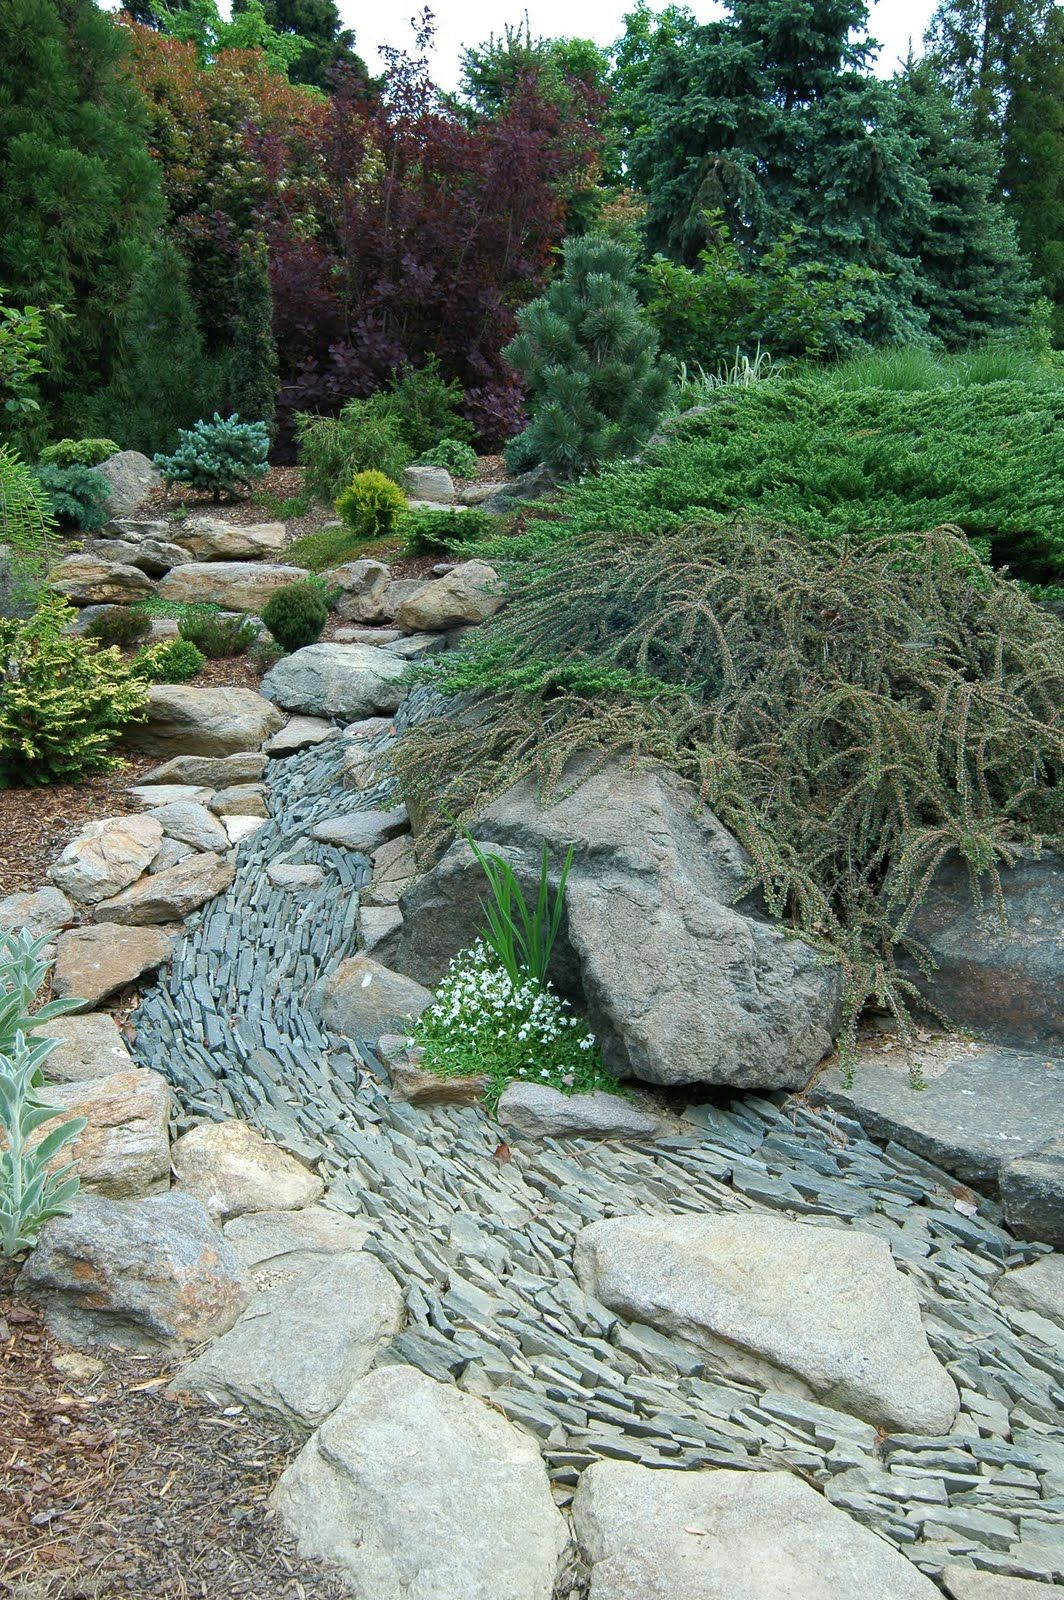 Dry Creek Bed, Dry Garden